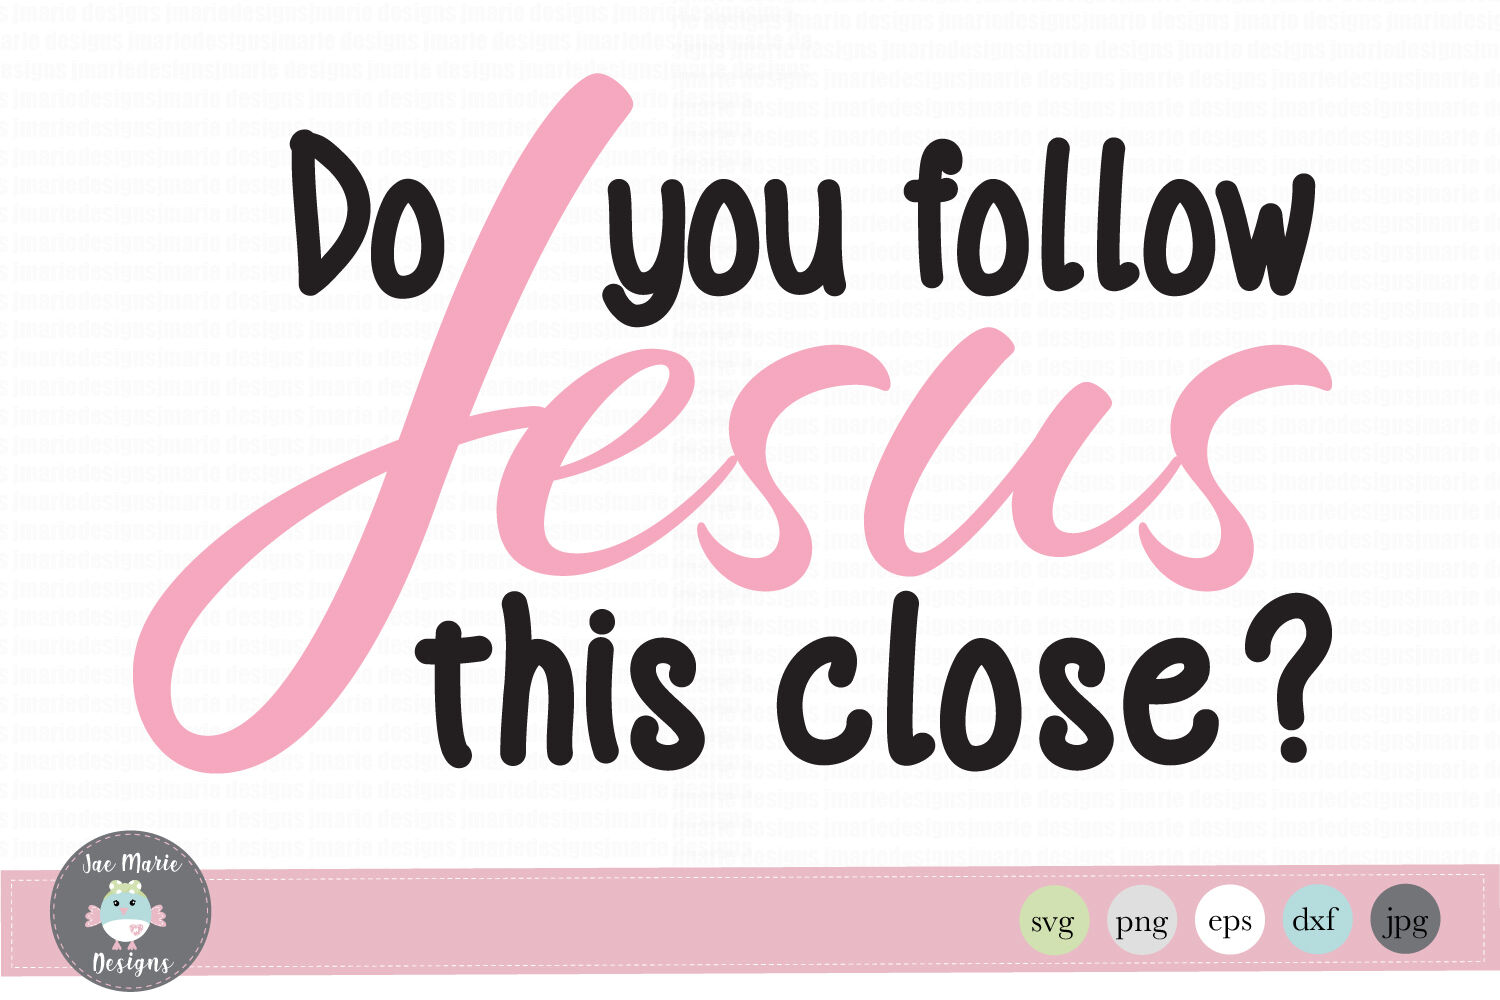 Funny Car Decal Svg Do You Follow Jesus This Close Svg By Jae